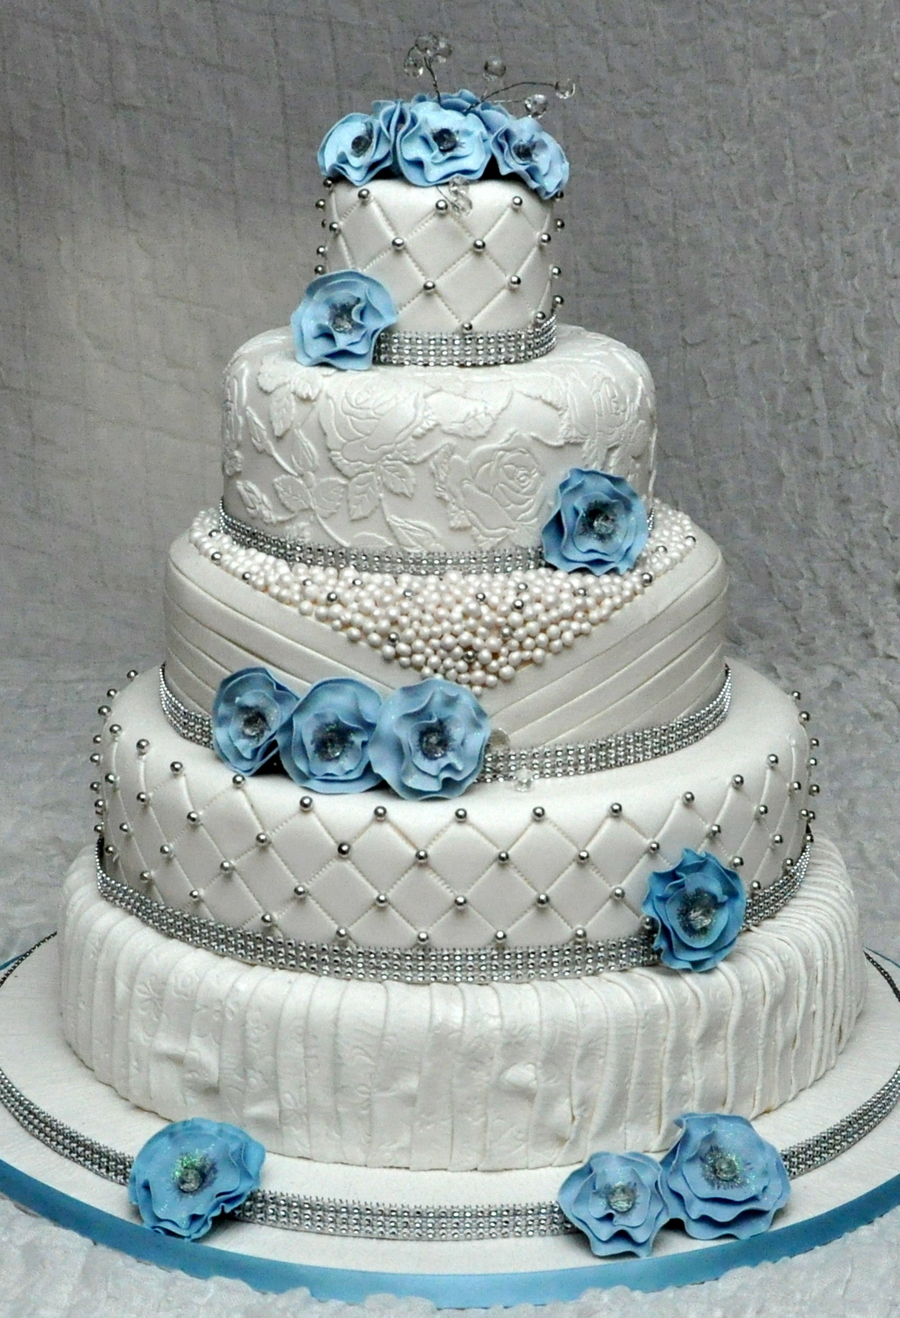 Photo Cake Images Edible : 5 Tier Wedding Cake With Edible Pearls And Lace Decorated ...